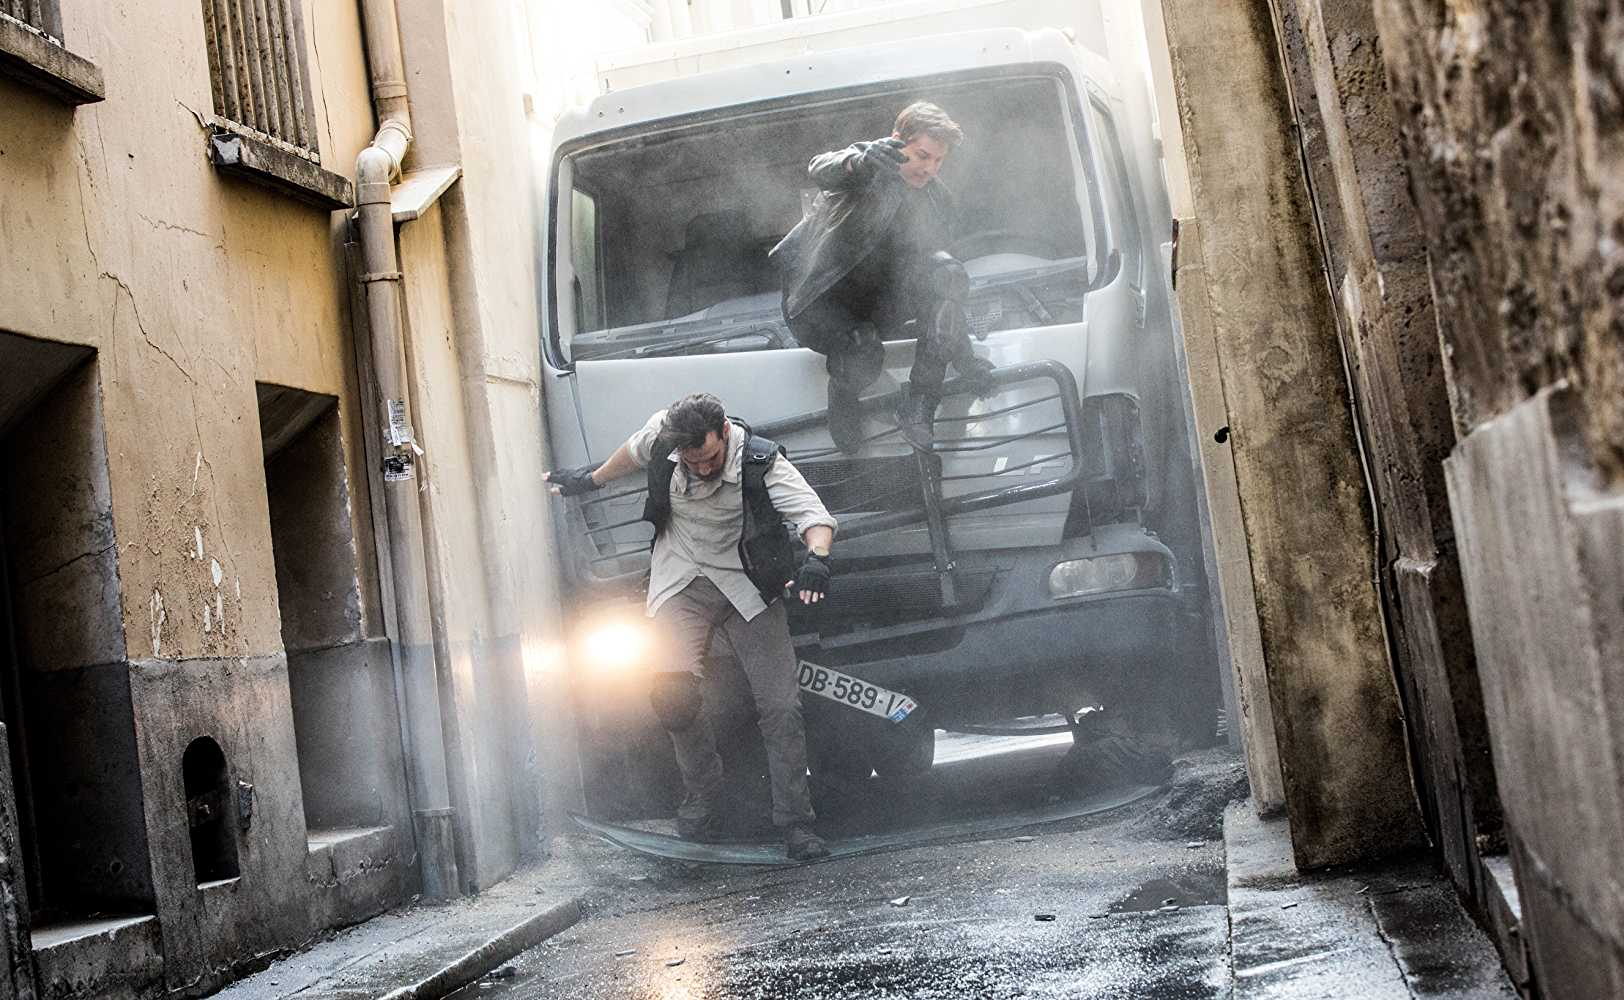 A Still from Mission Impossible Fallout